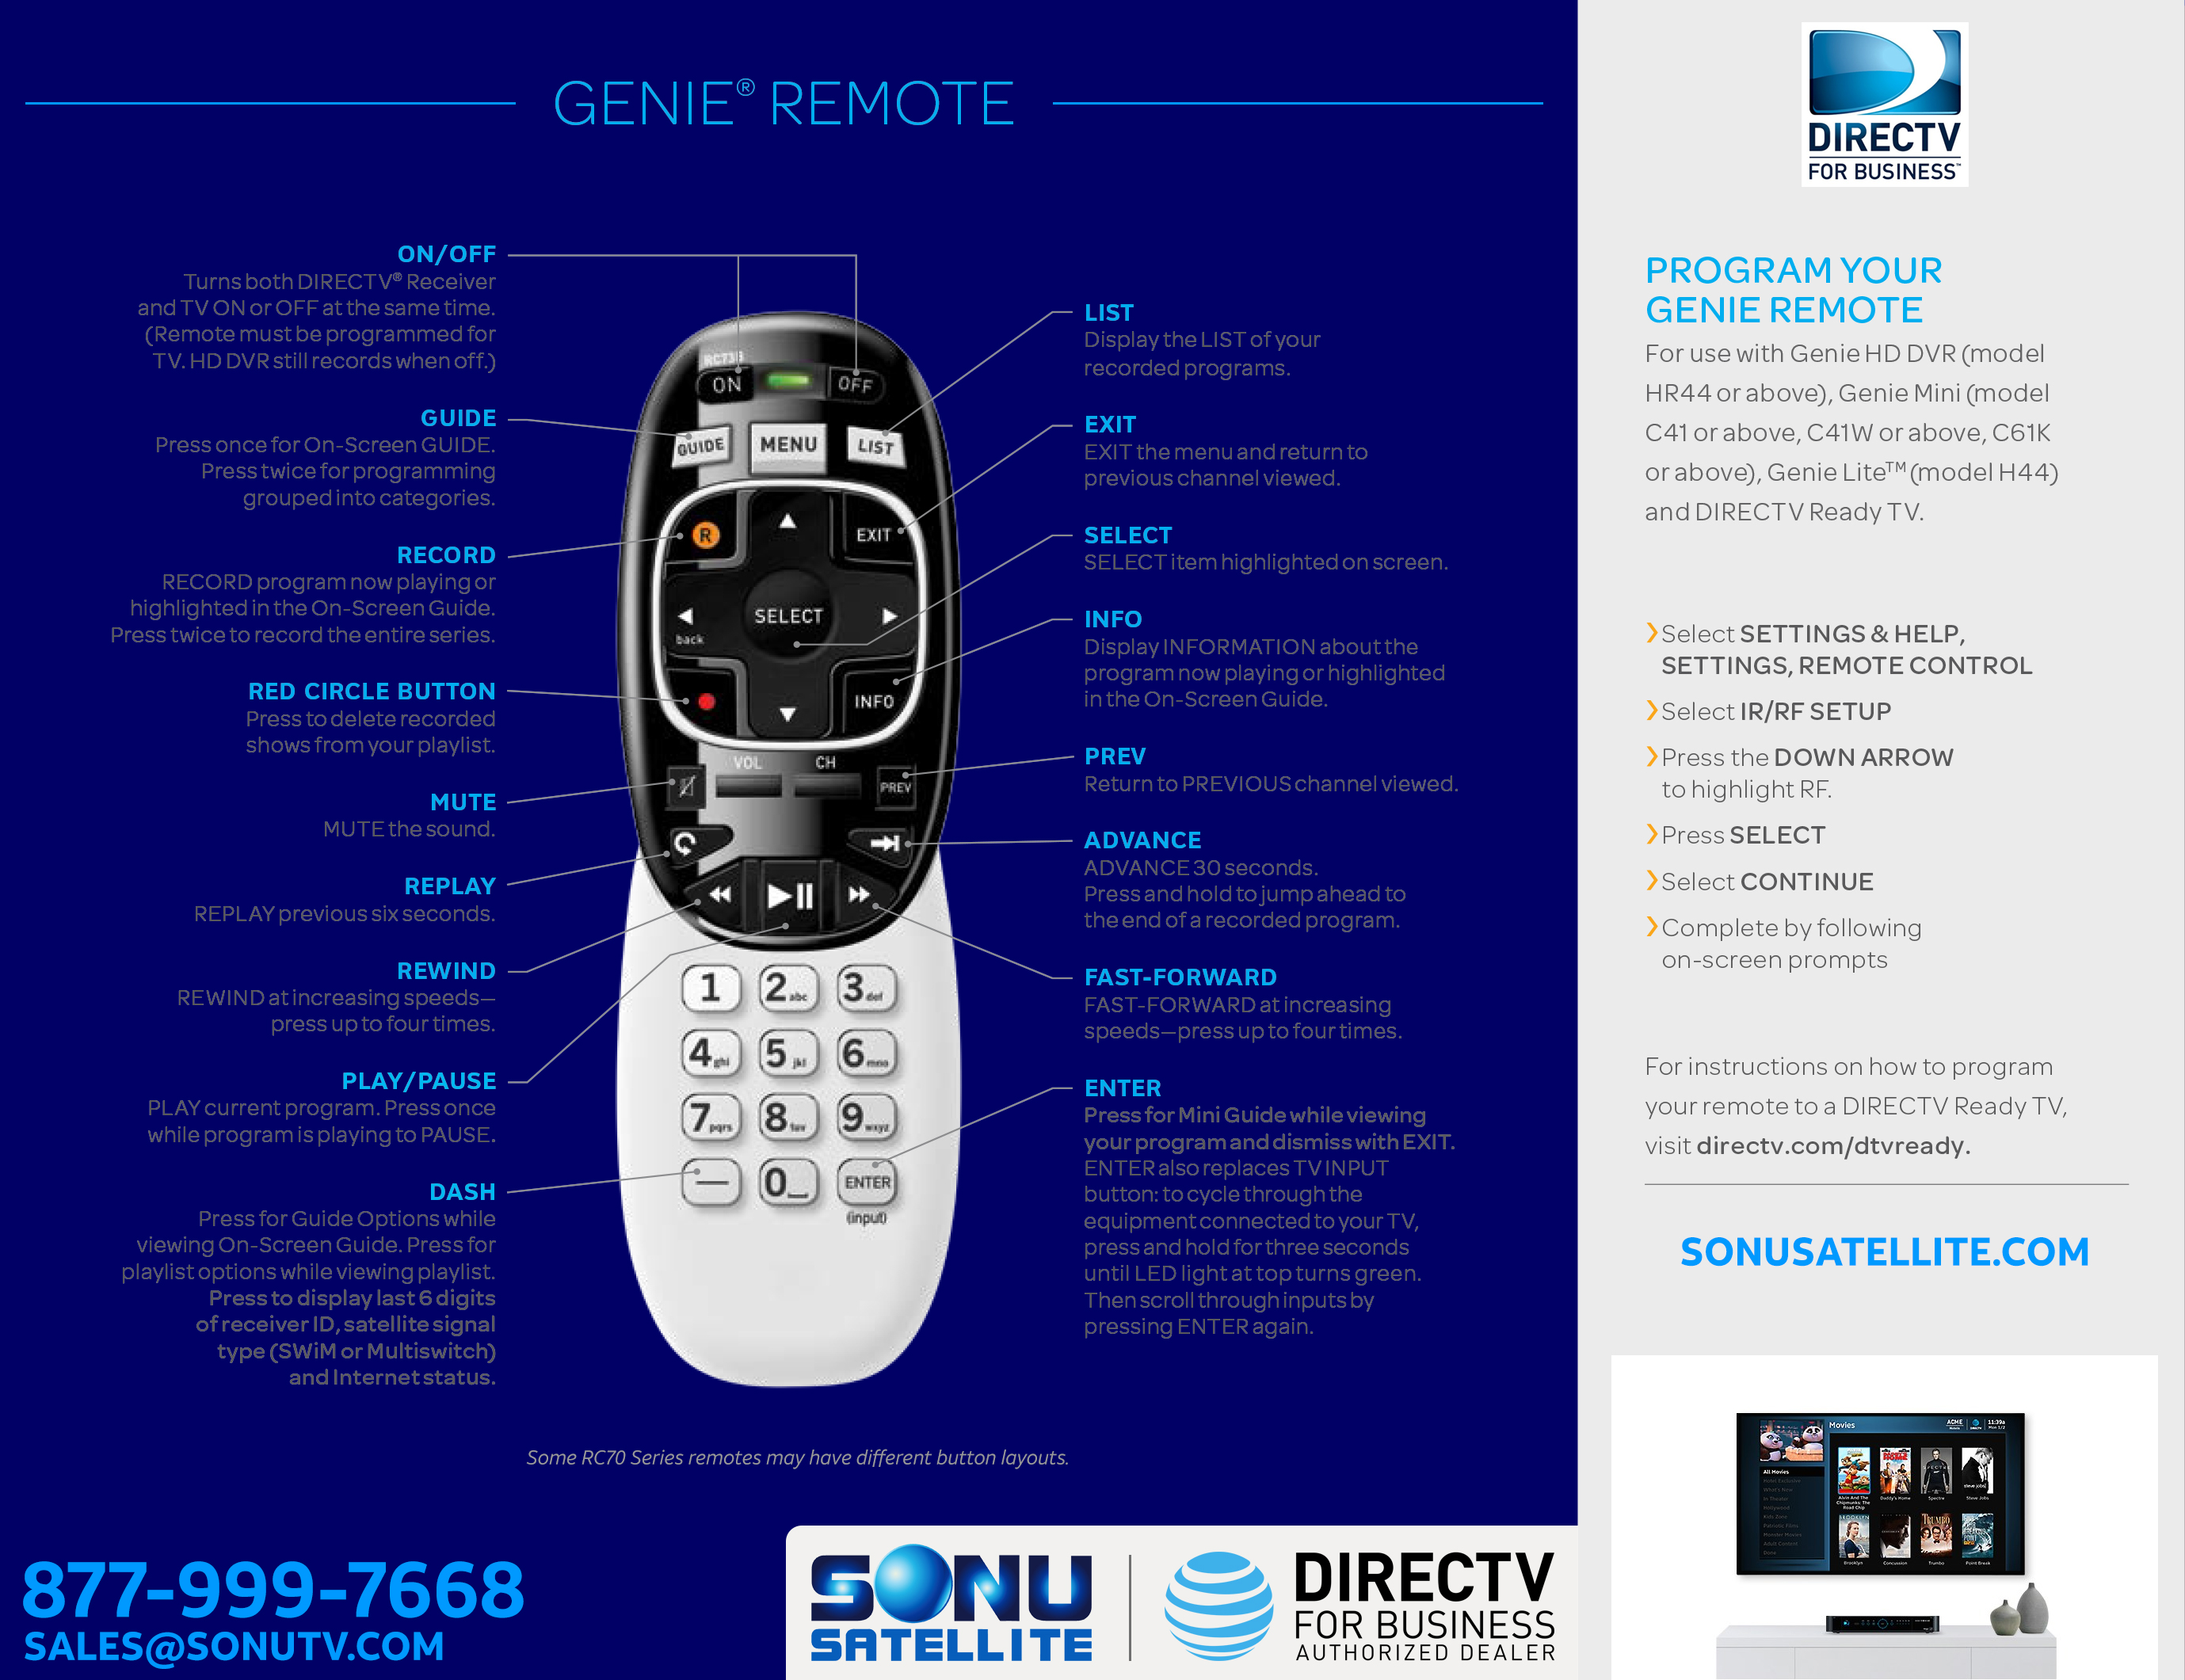 DIRECTV Remote Troubleshooting and Guide - Sonu Satellite TV